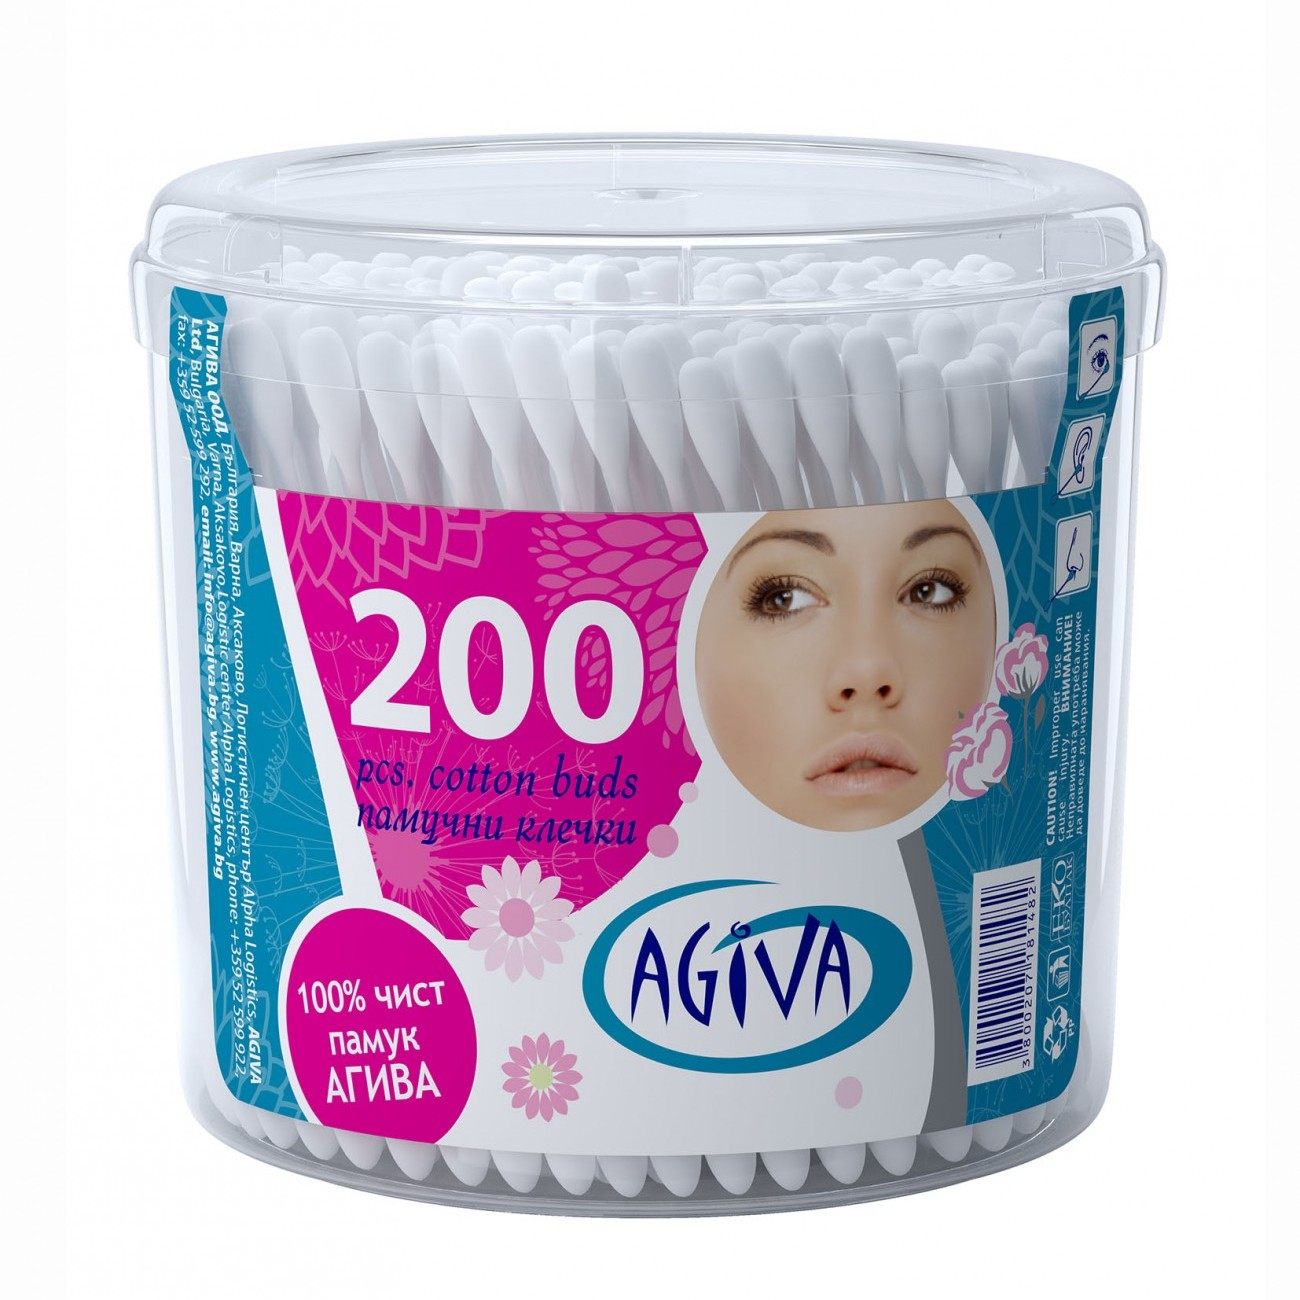 Agiva cotton buds 200 pcs